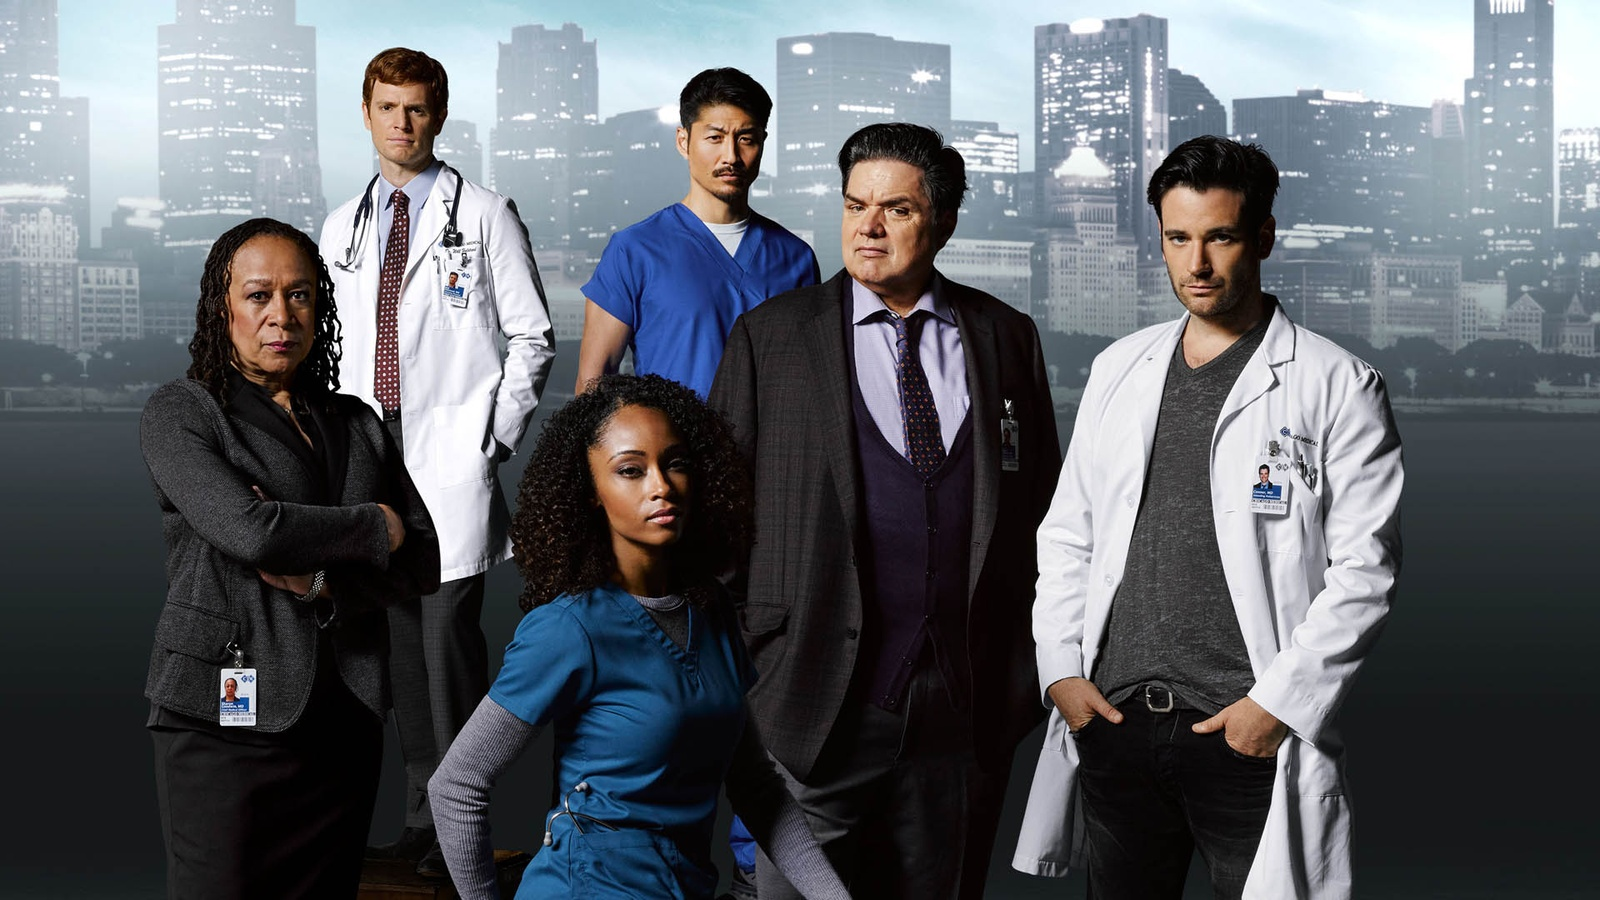 Медики Чикаго / Chicago Med background